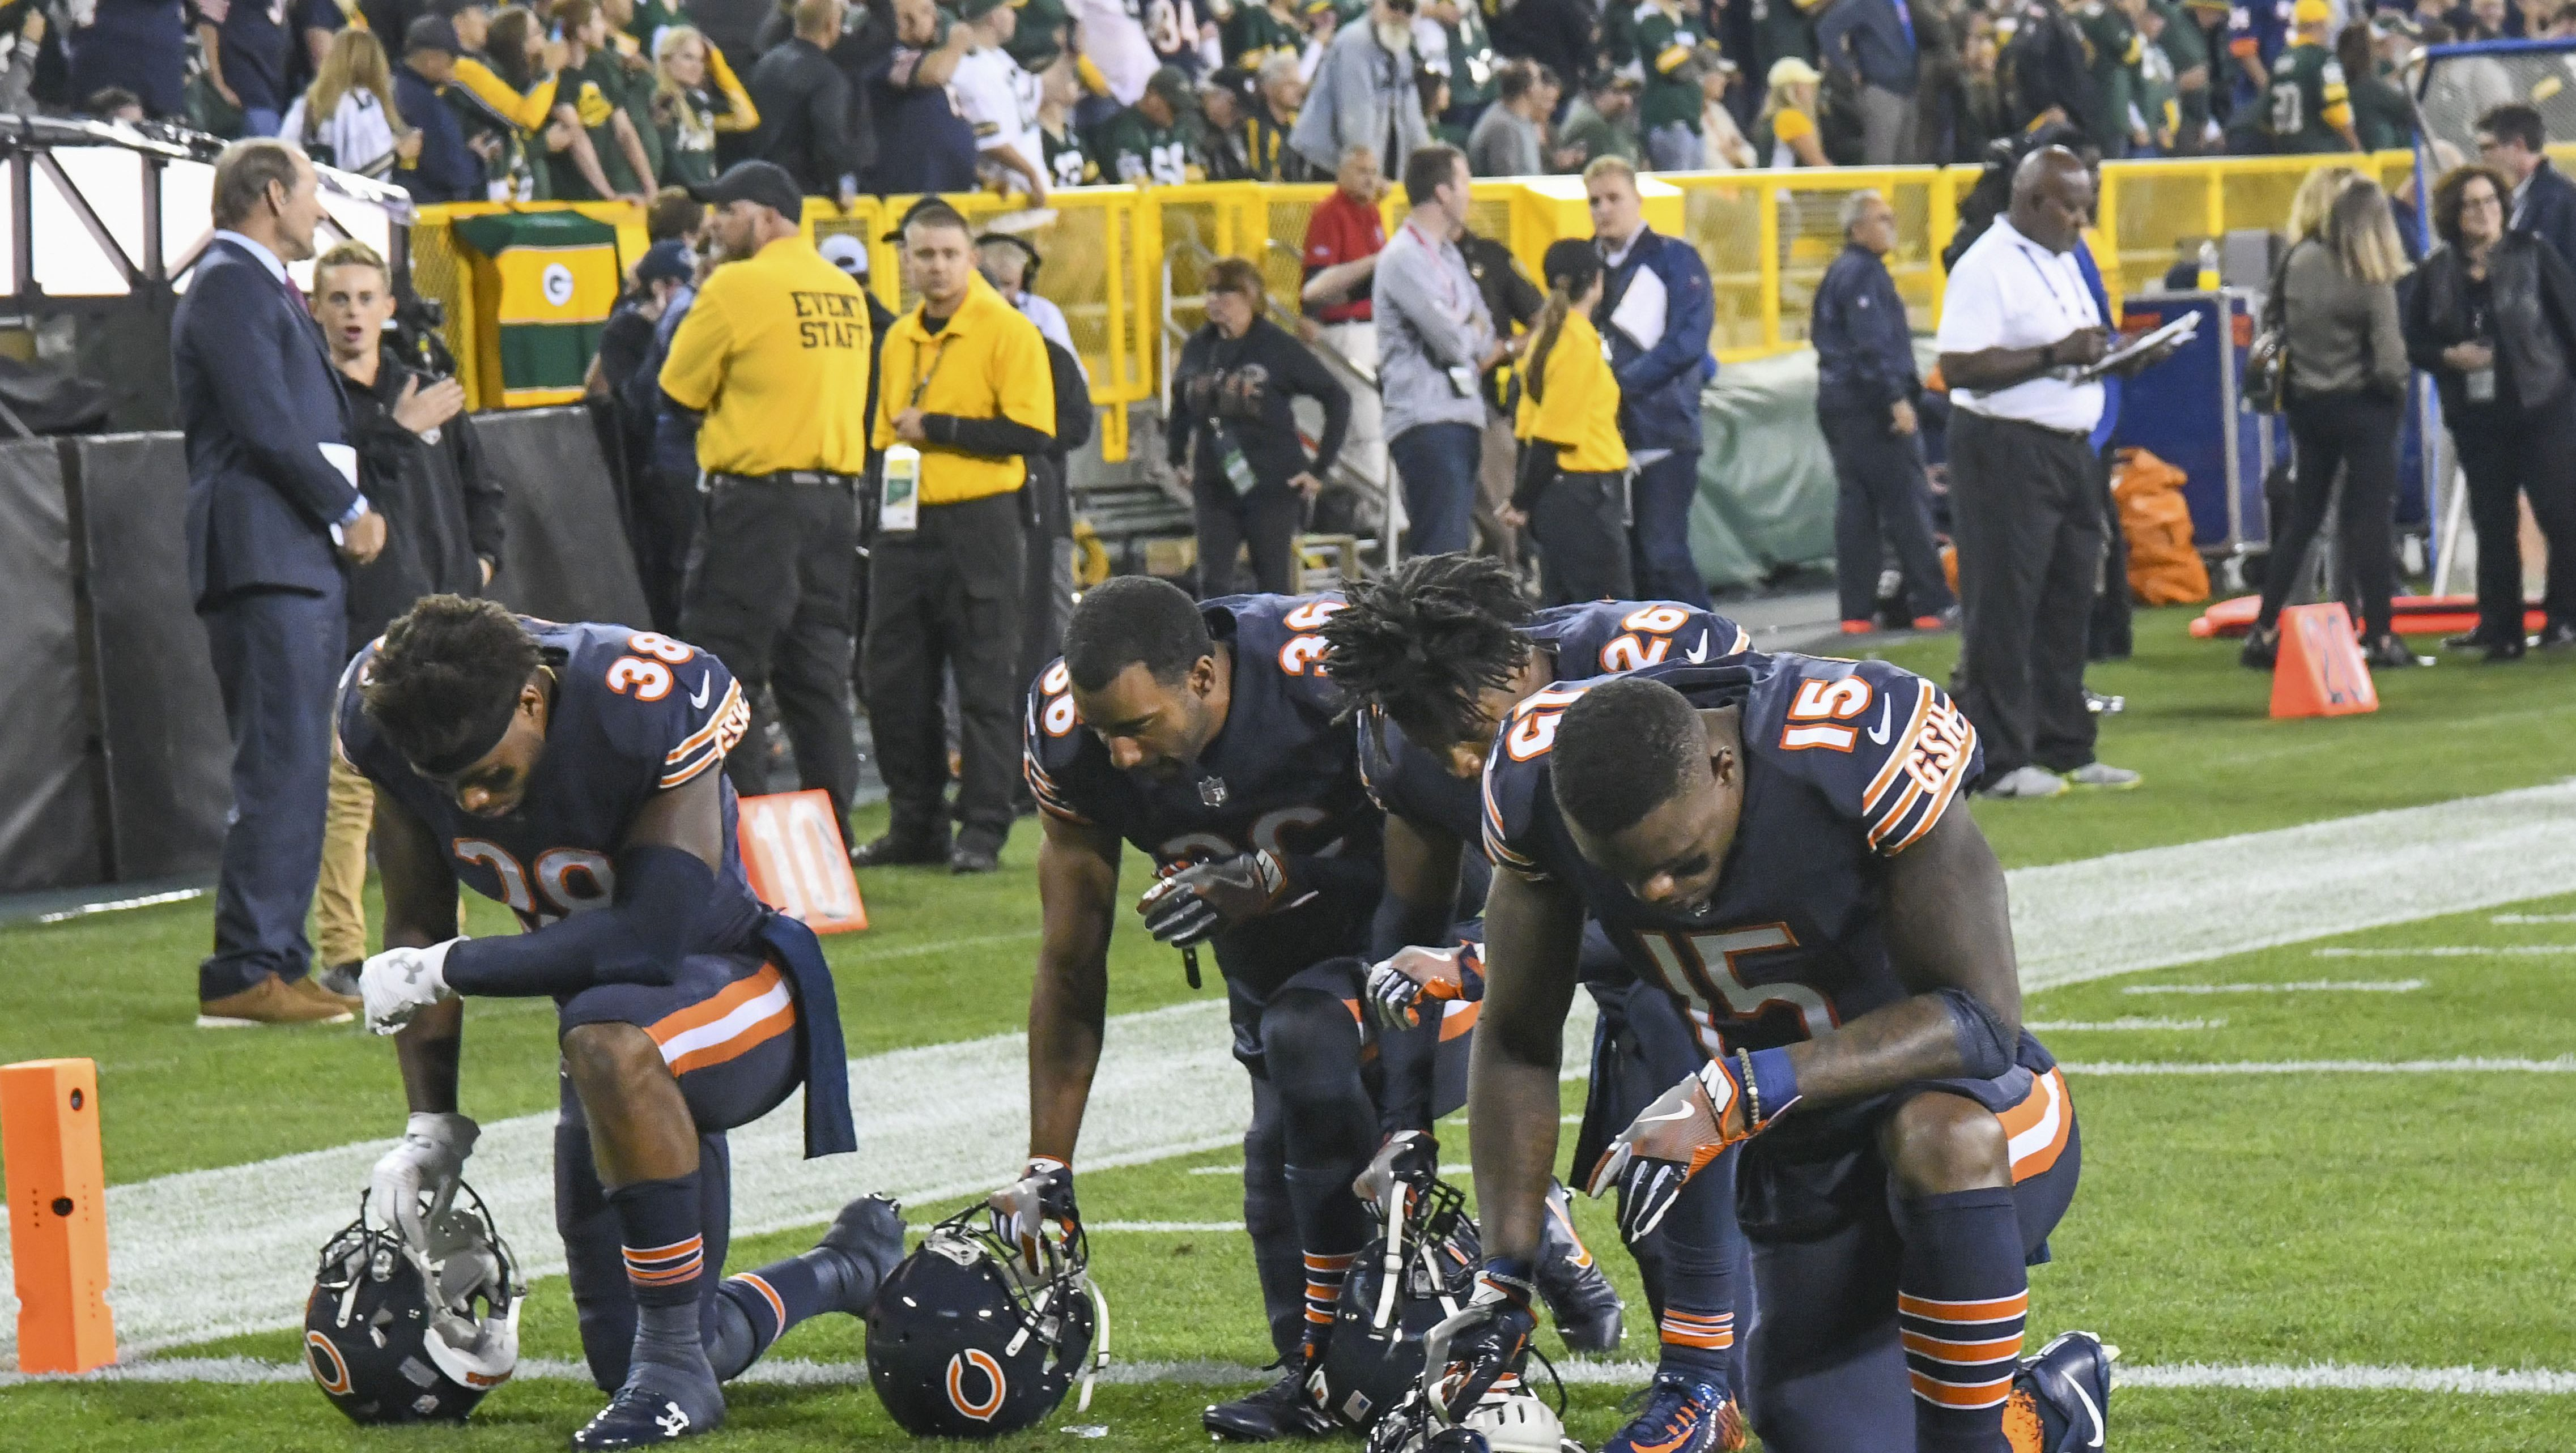 Chicago Bears players kneel in the end zone prior to their game the Green Bay Packers against before the national anthem at Lambeau Field.